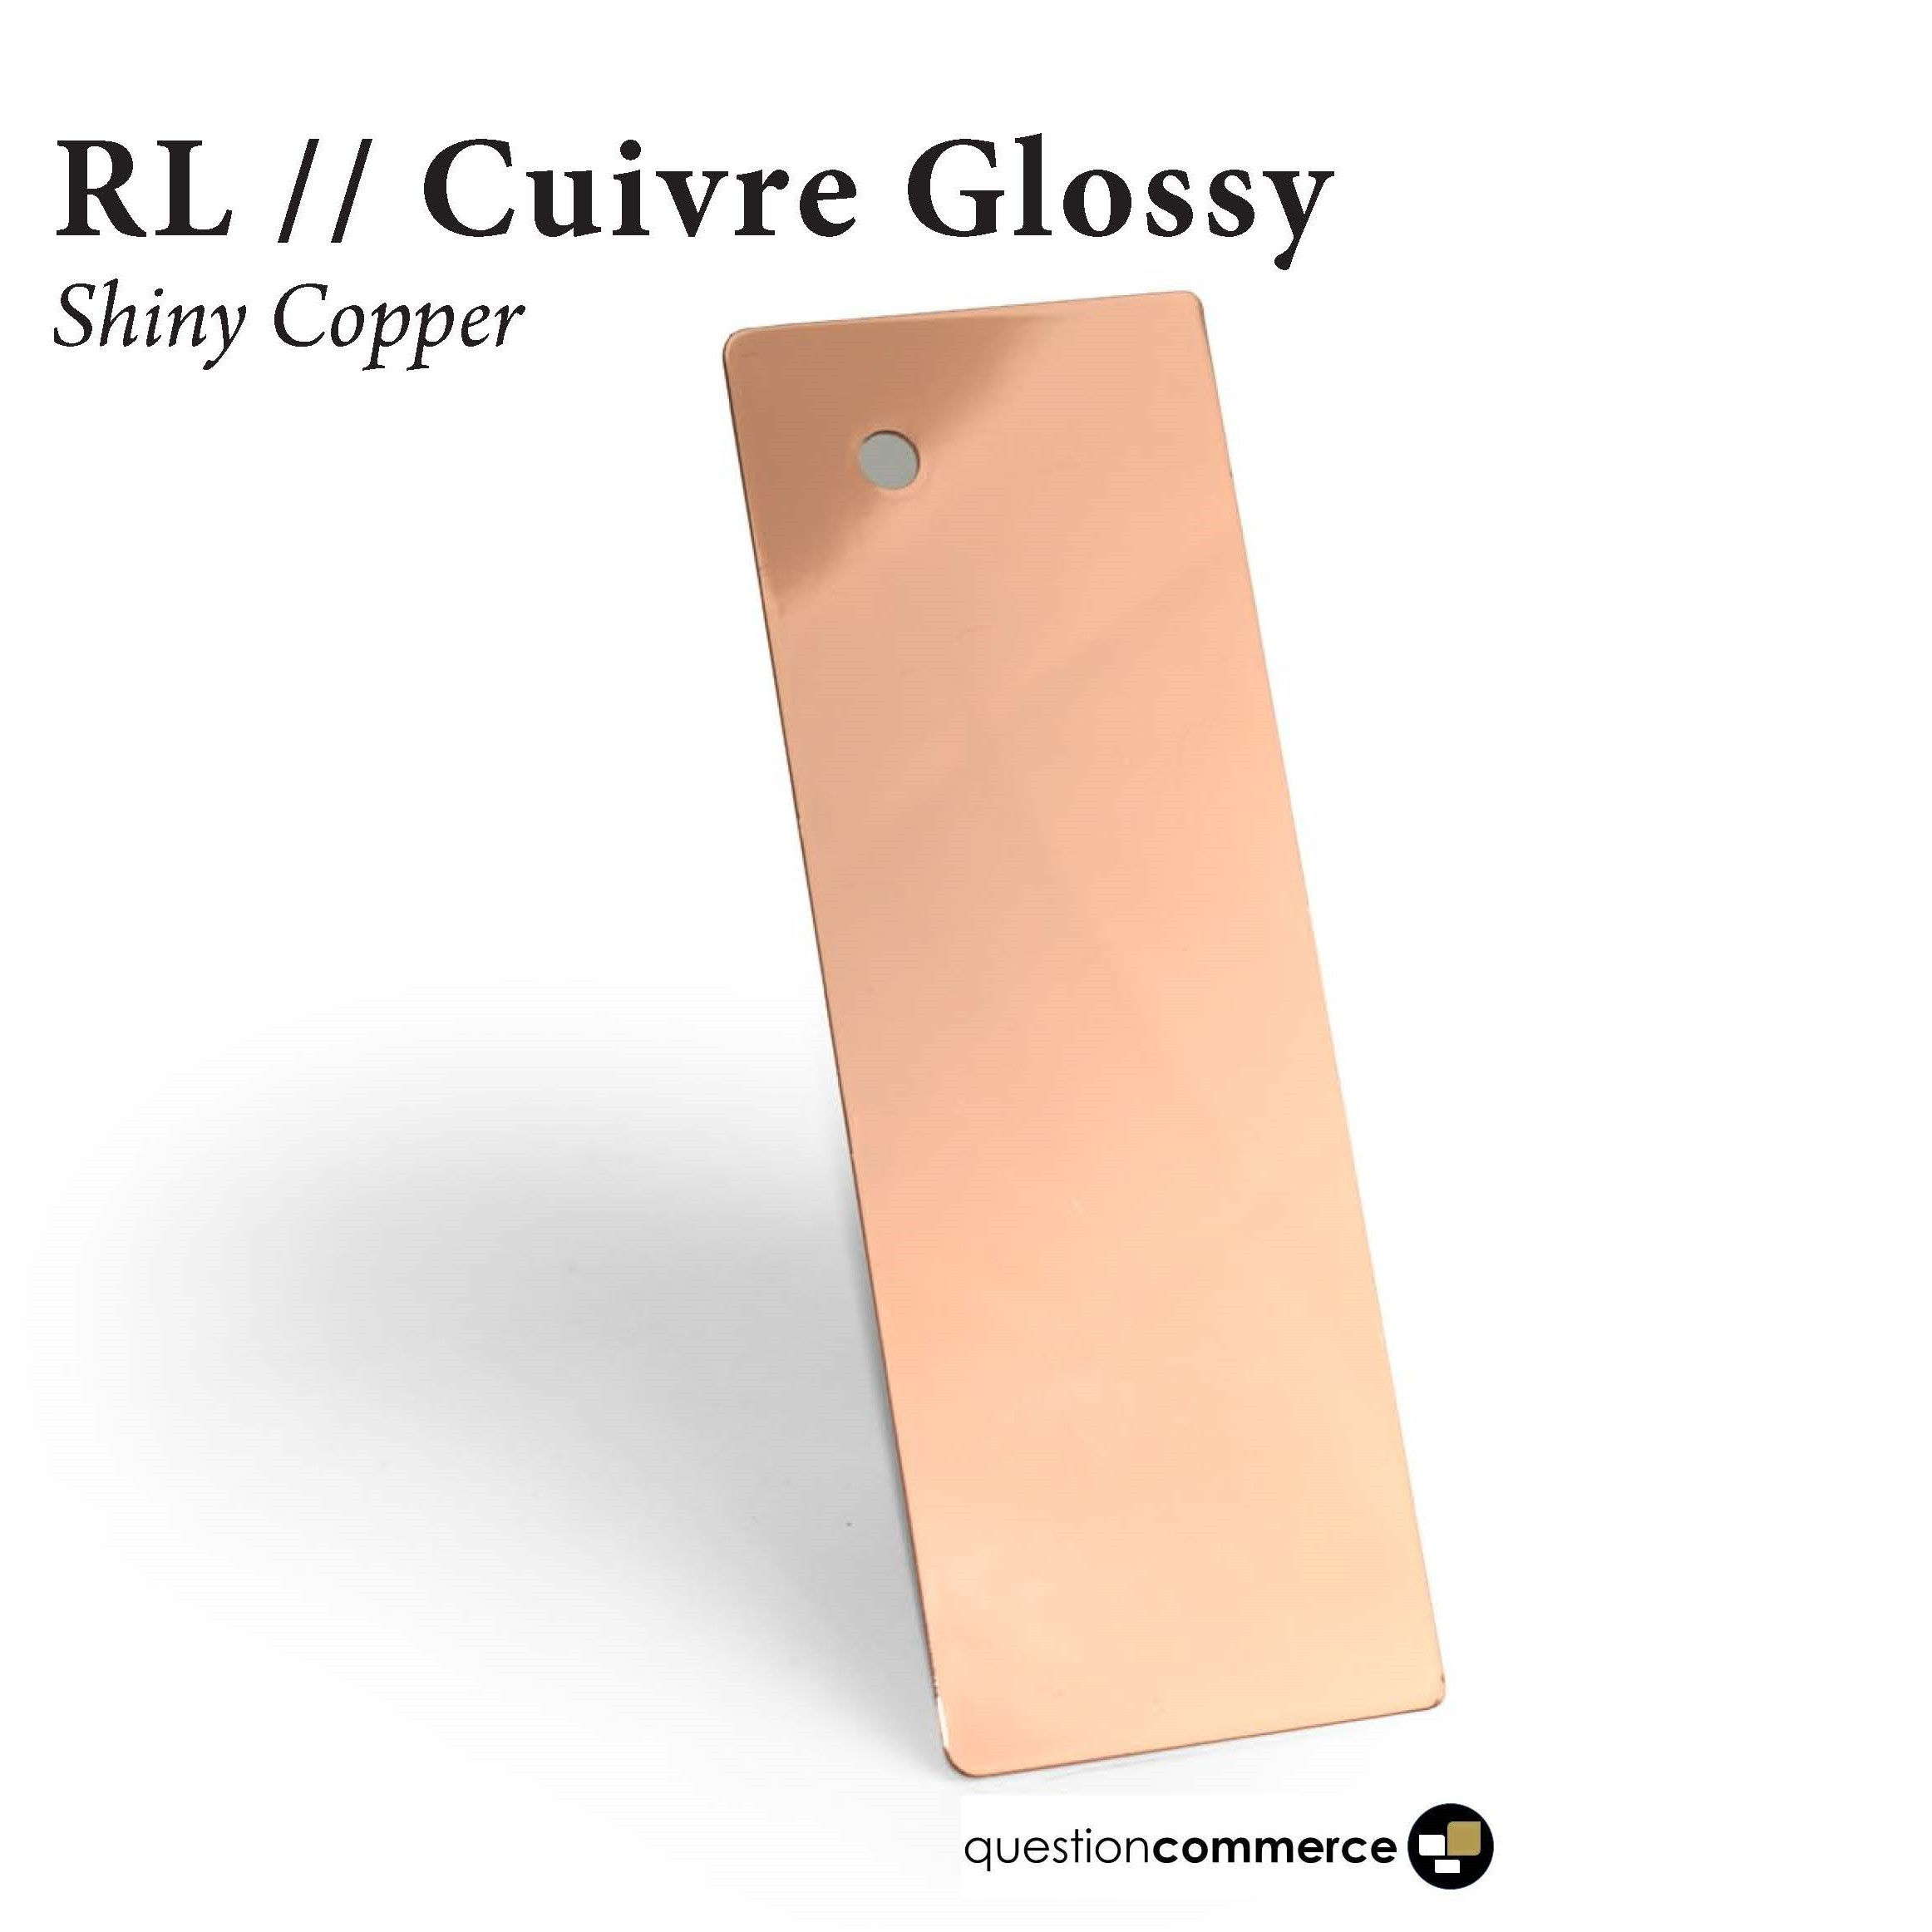 Cuivre Glossy